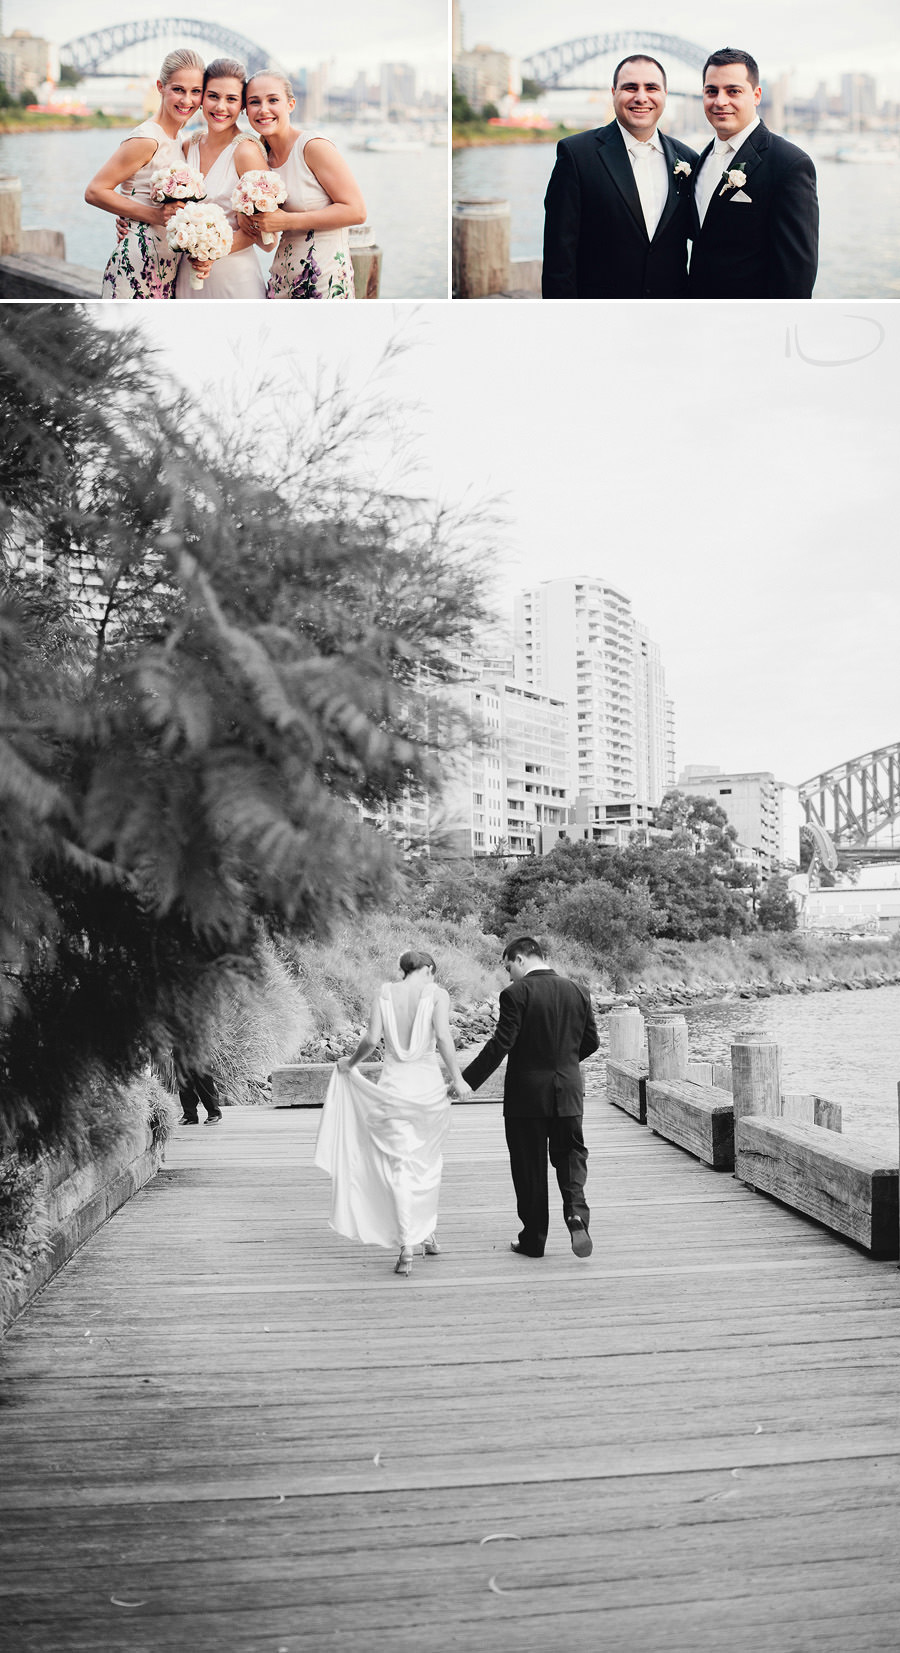 Elegant Wedding Photographer: Bride & groom walking along boardwalk